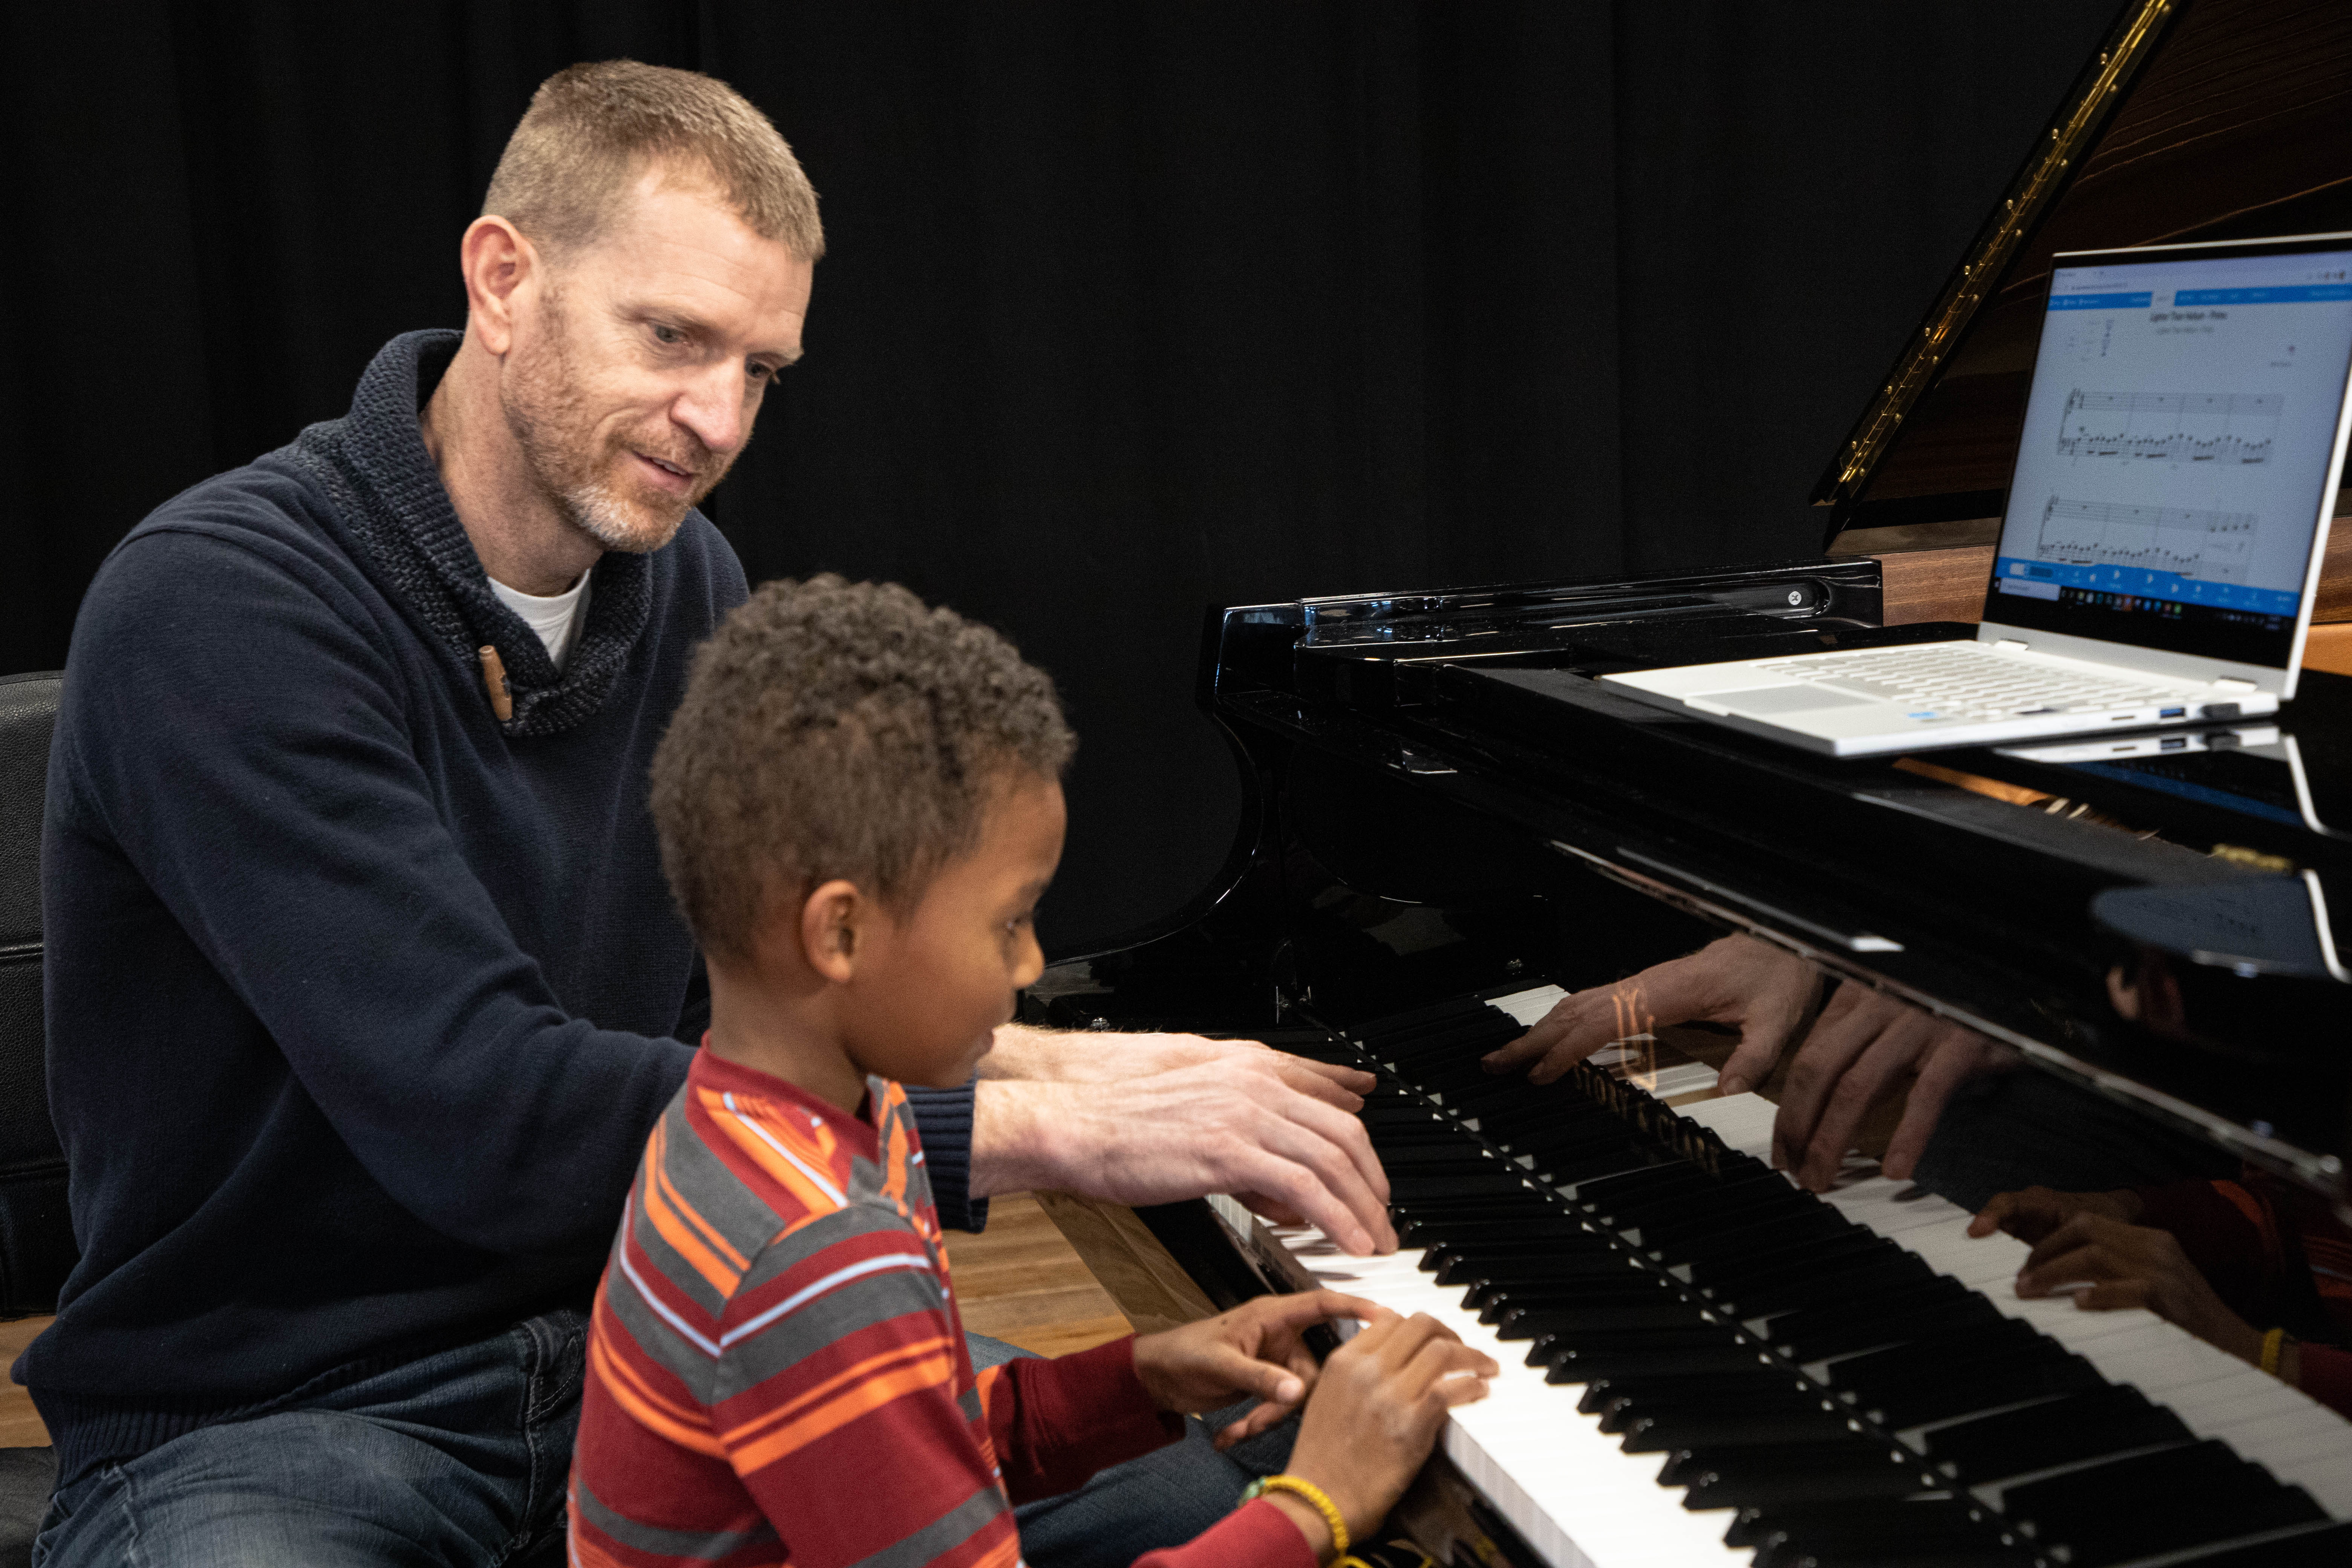 Aaron giving little boy a piano lesson